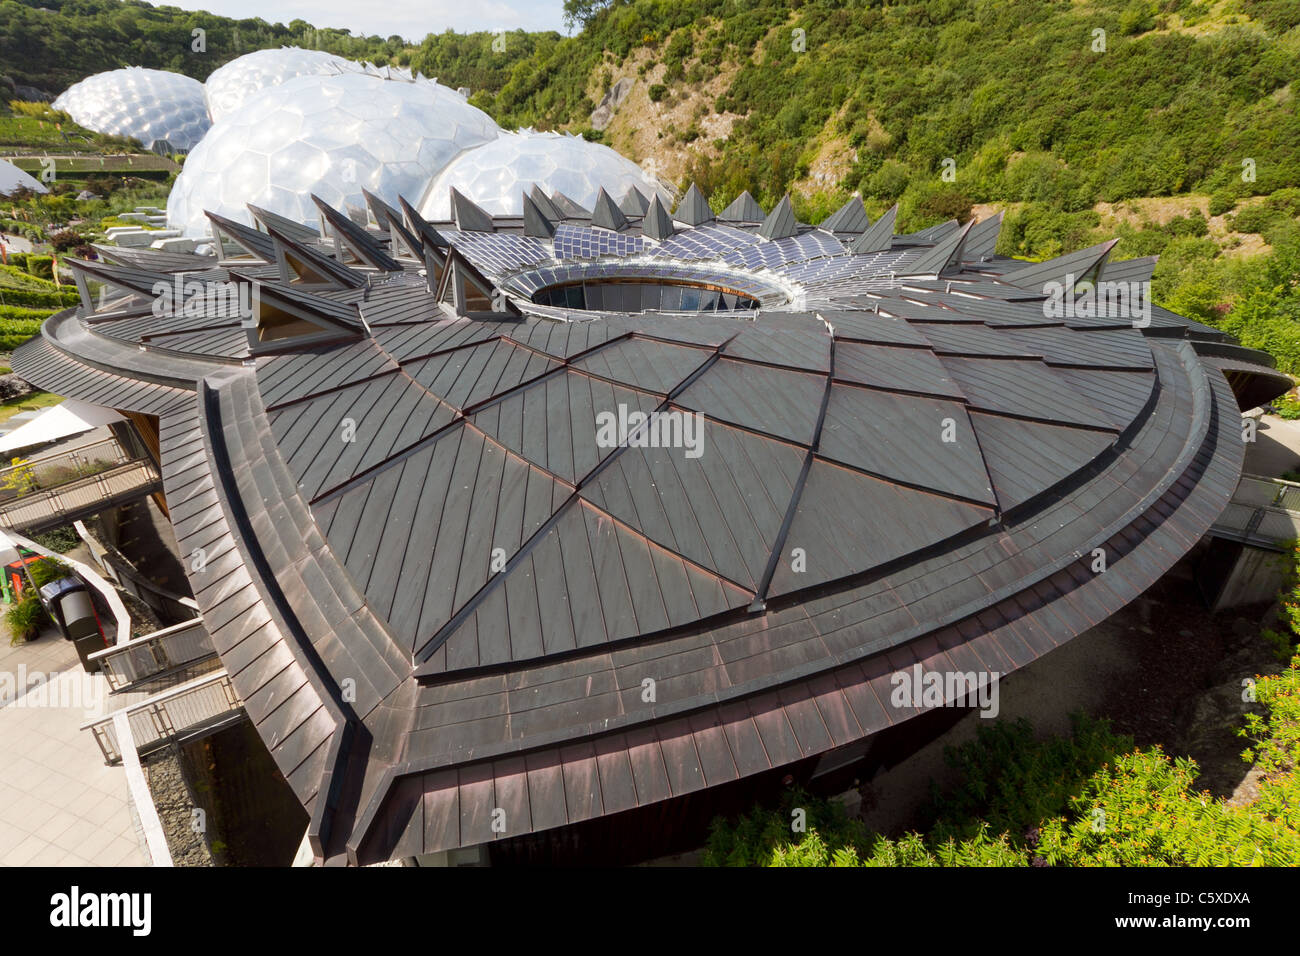 'The Core' at The Eden Project with Biomes in background - Stock Image